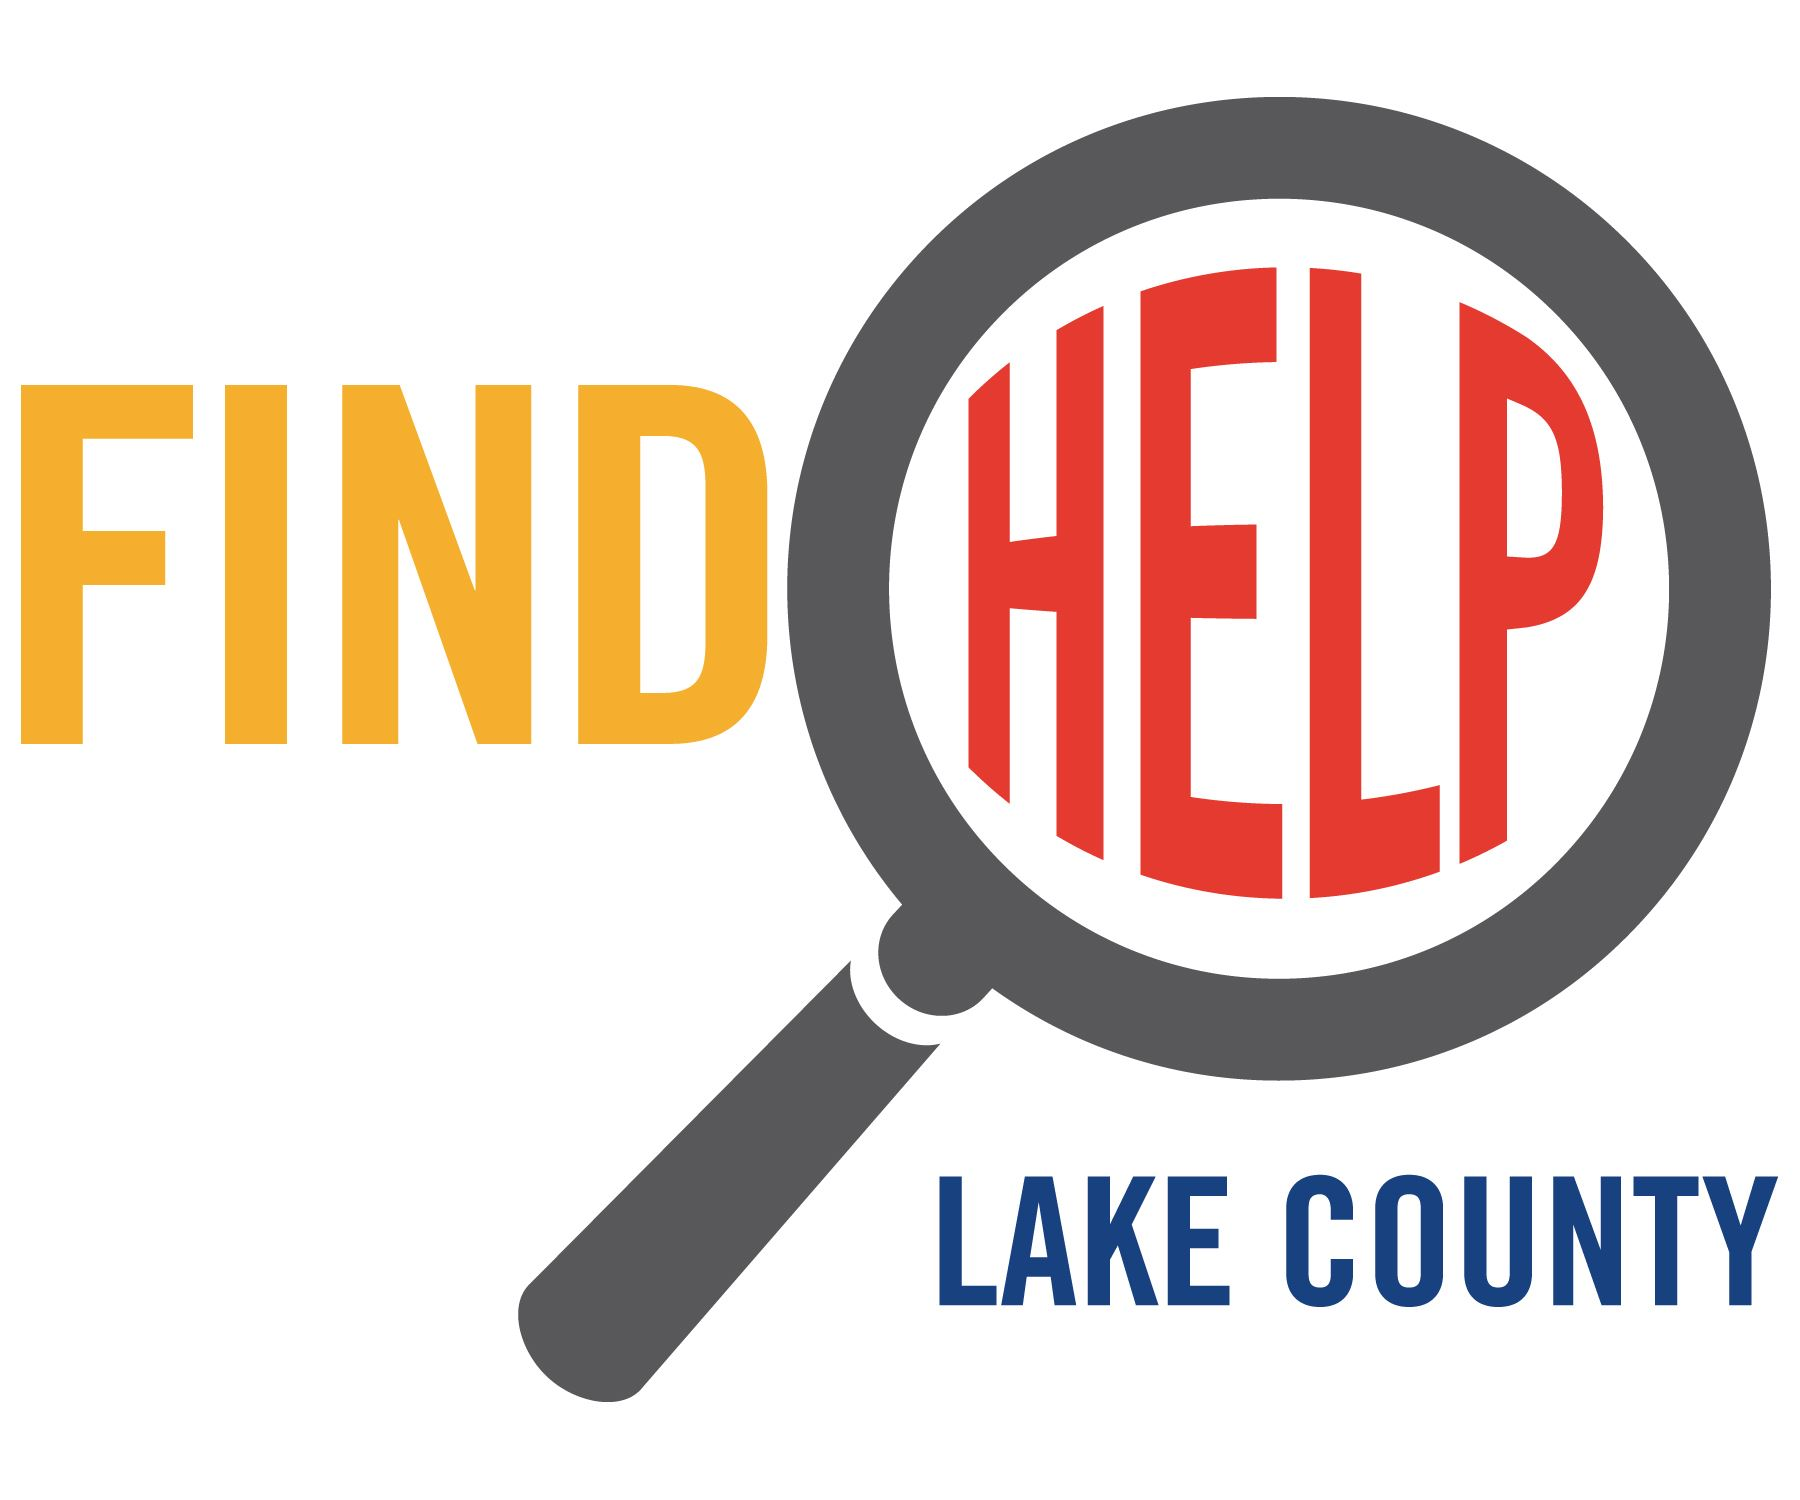 Find Help Lake County